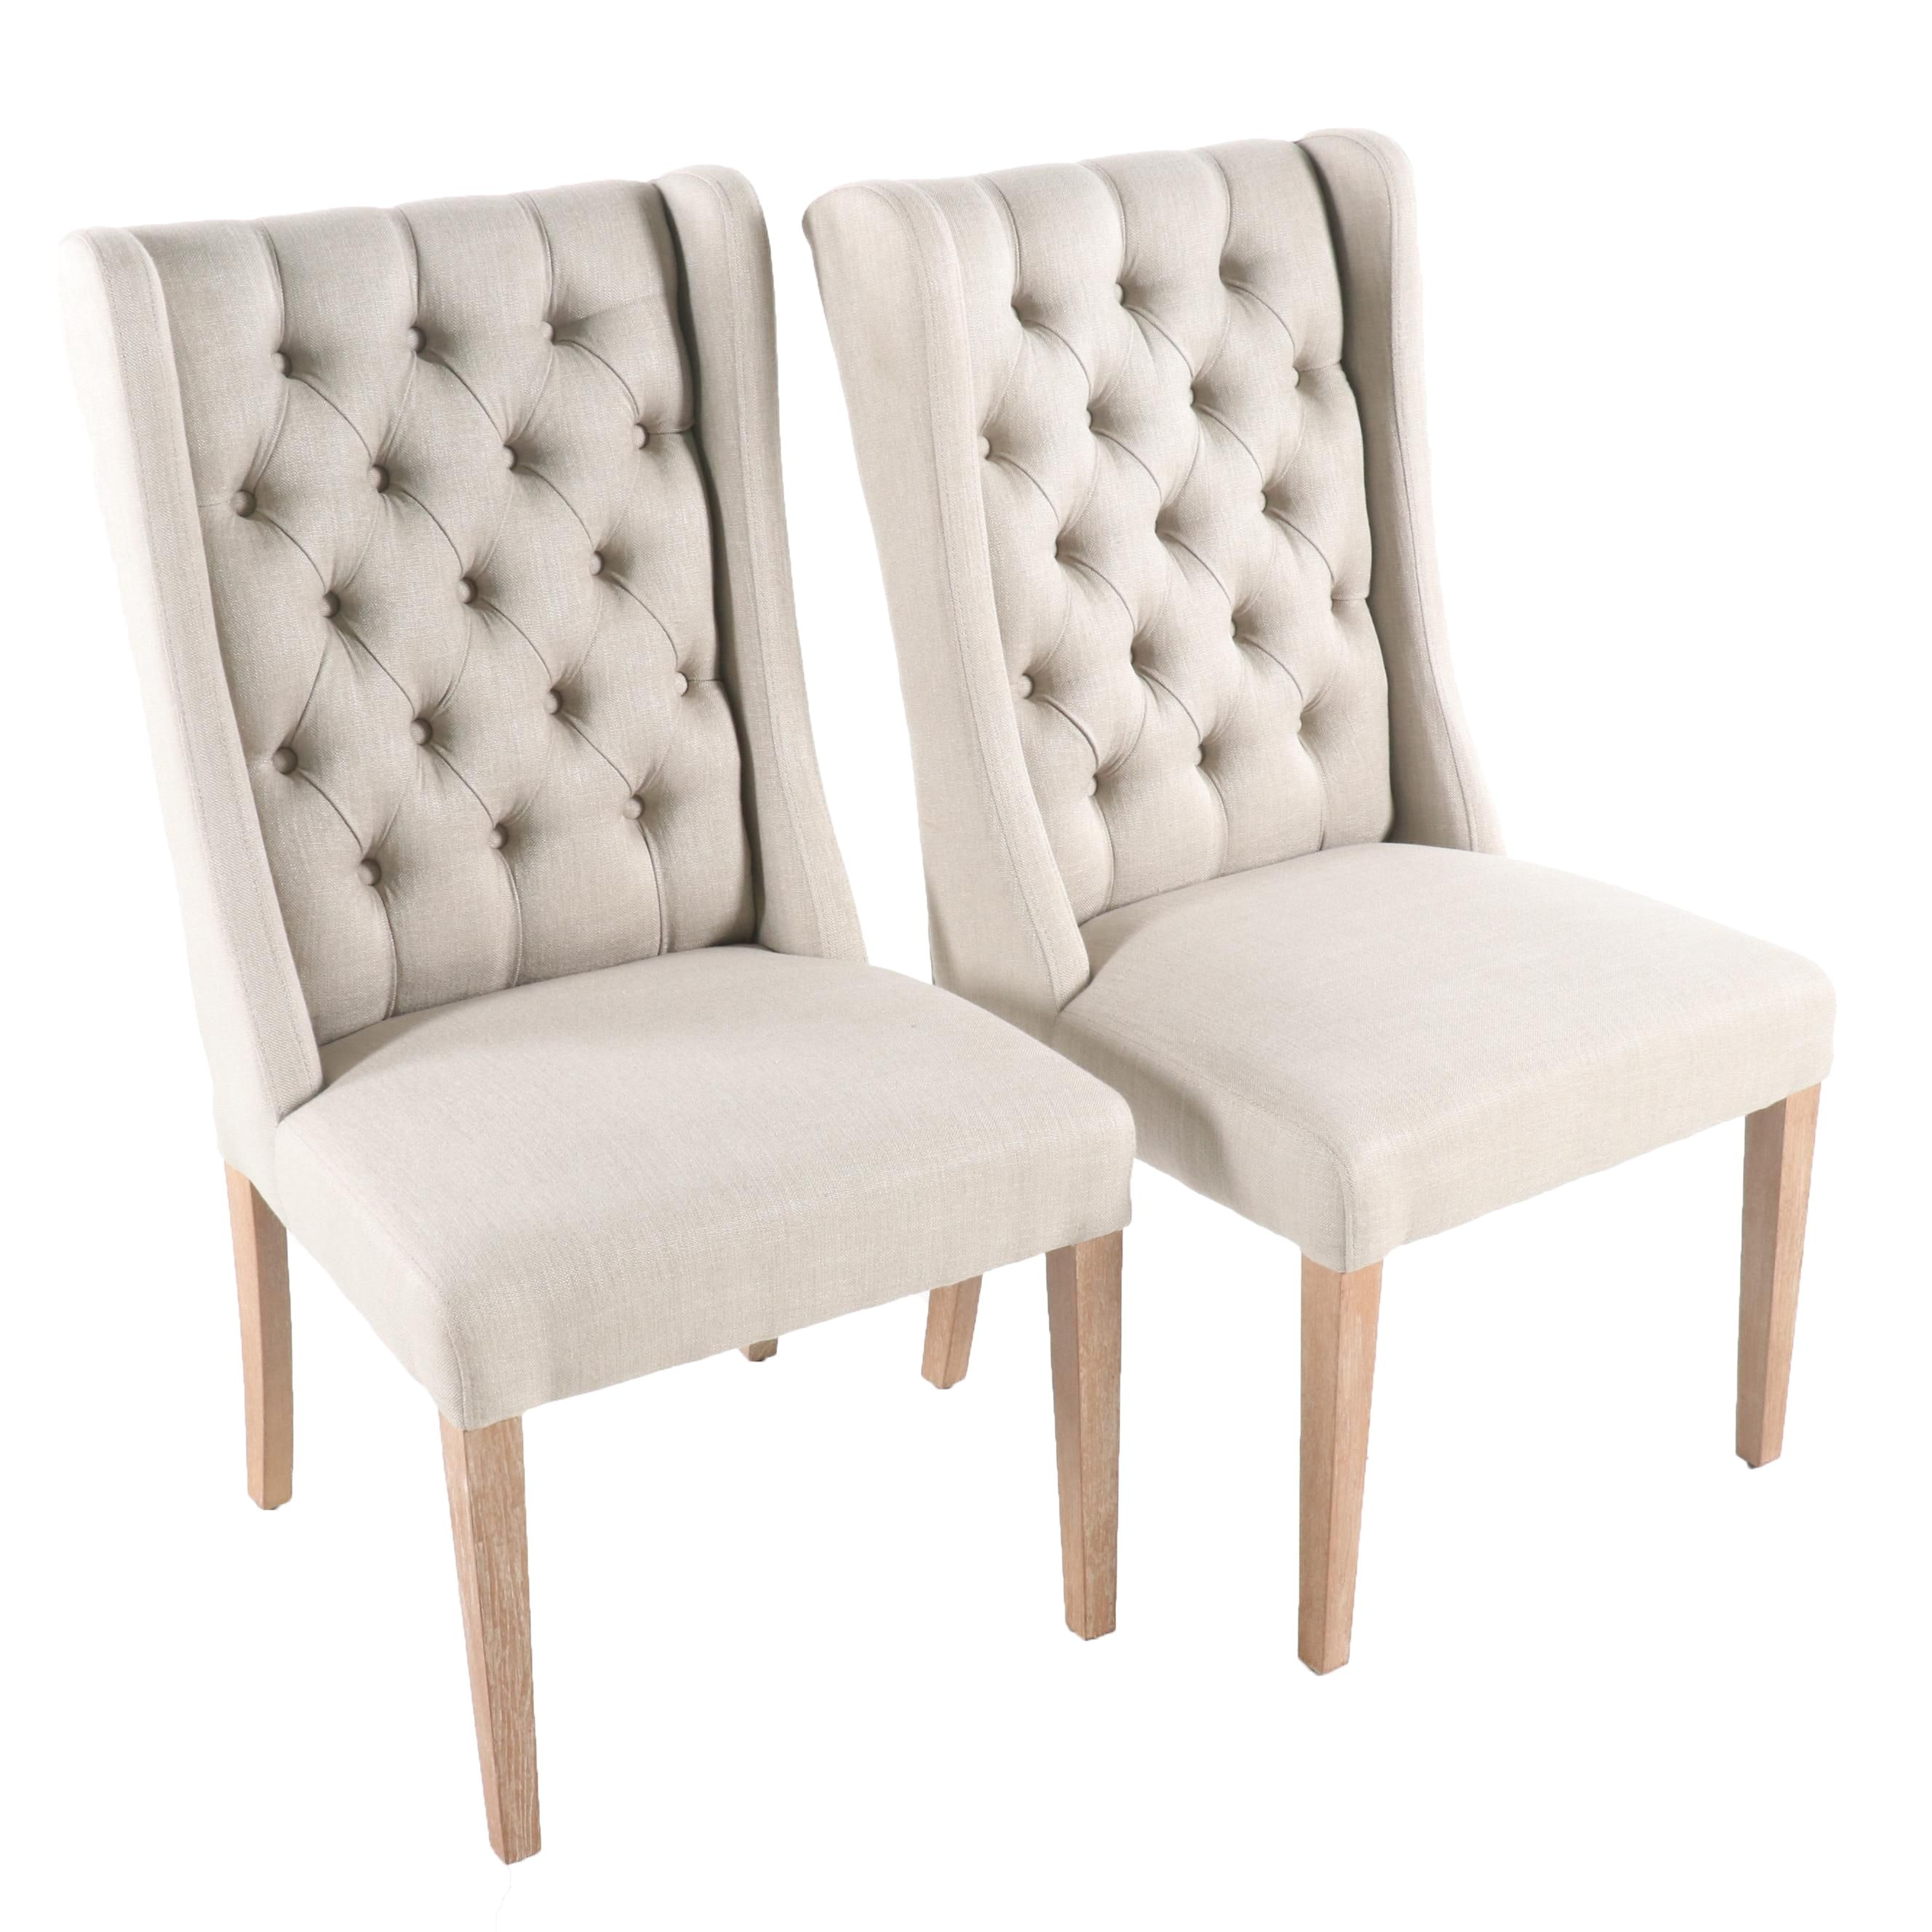 Tufted Wingback Linen Side Chairs, 21st Century